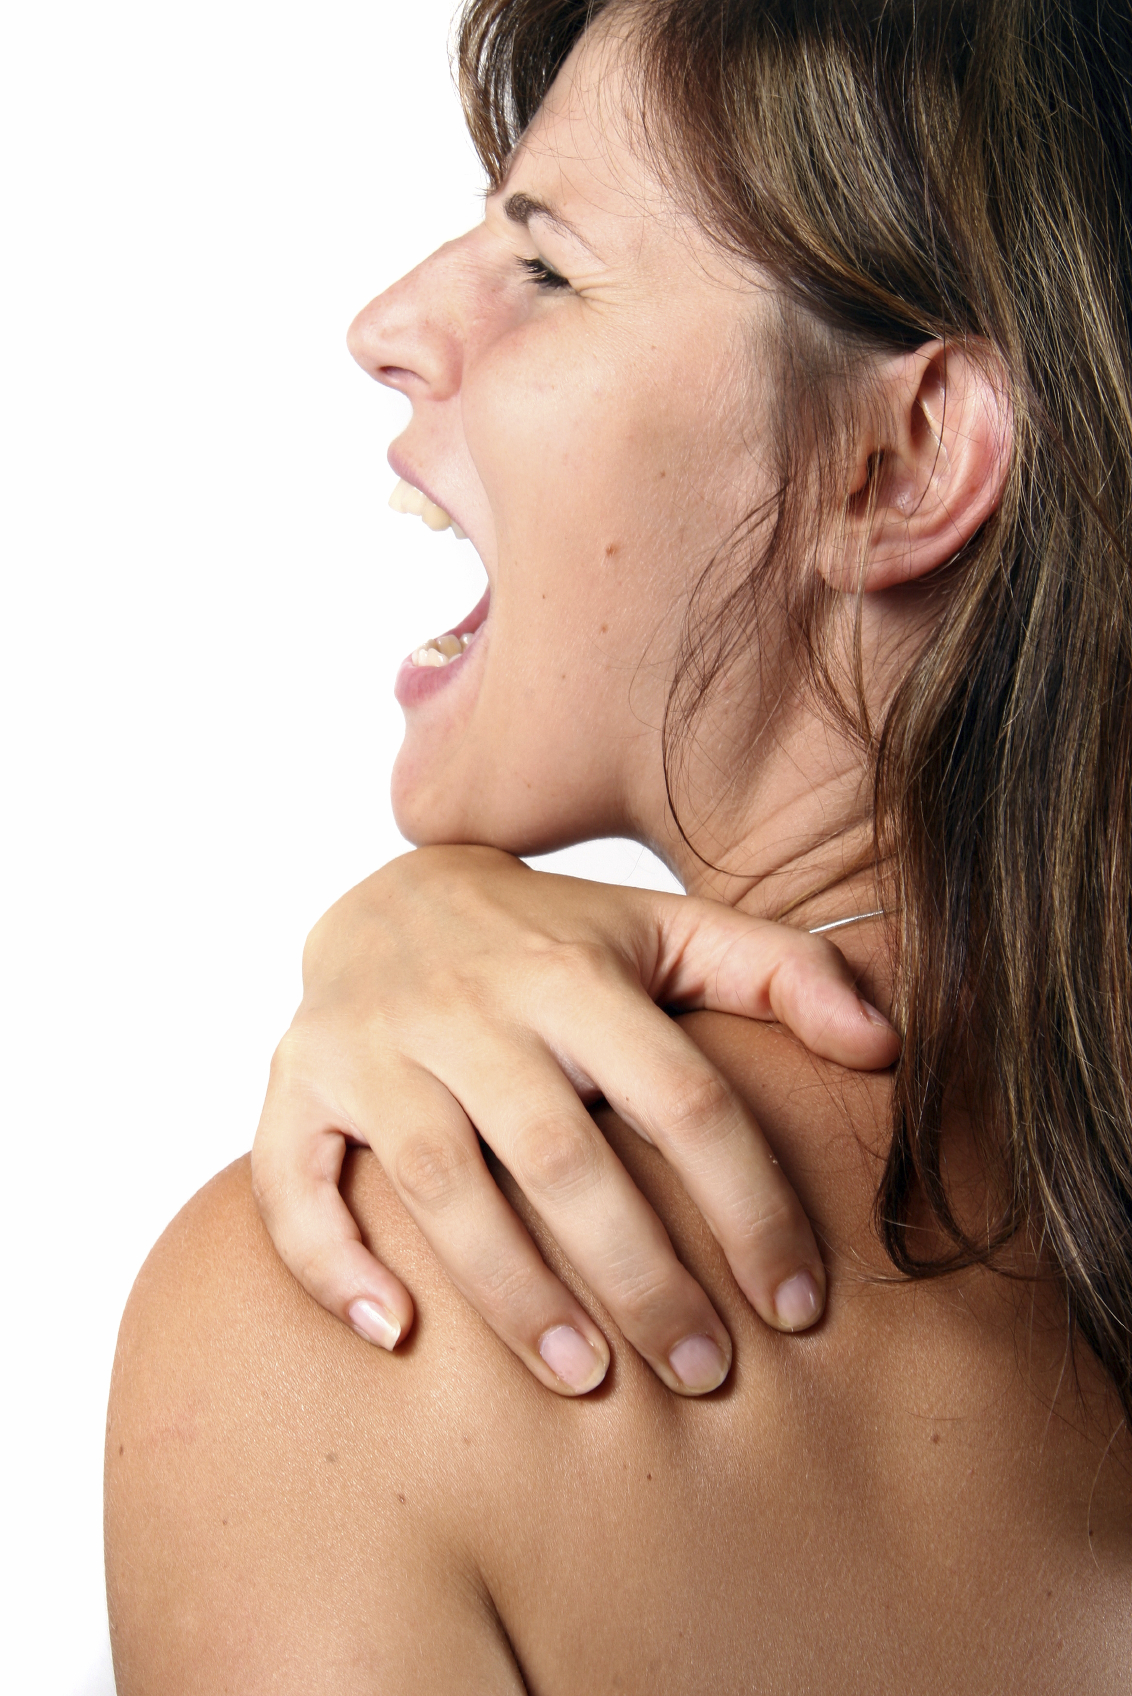 Shoulder pain from your neck